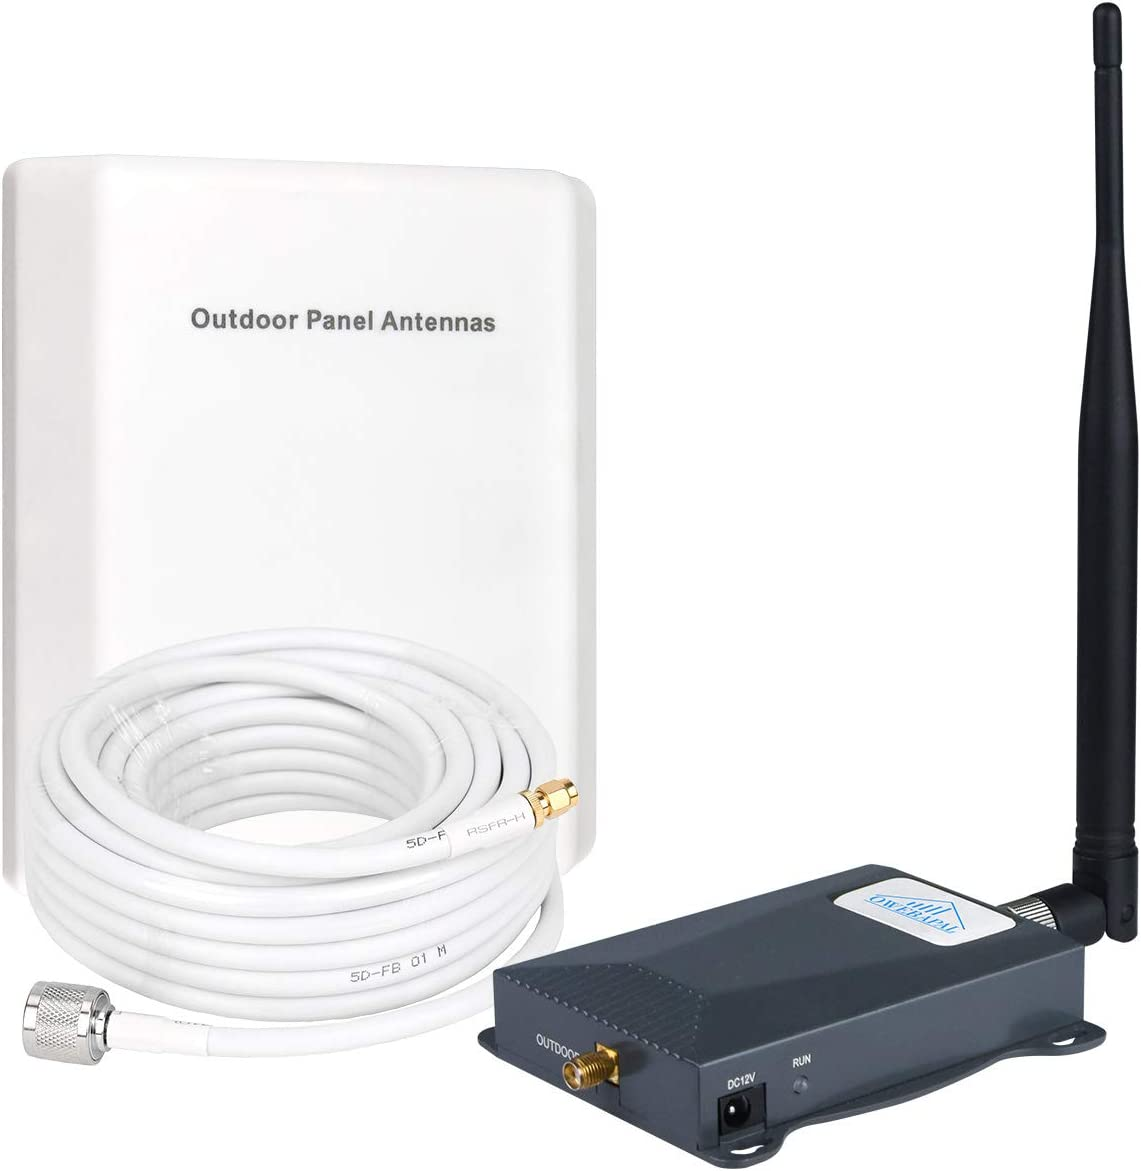 AT&T Cell Phone Signal Booster 4G LTE Cell Phone Booster 700Mhz ATT T-Mobile Cell Booster Band 12/17 ATT Cellular Signal Amplifier Home Use Mobile Phone Signal Booster Repeater